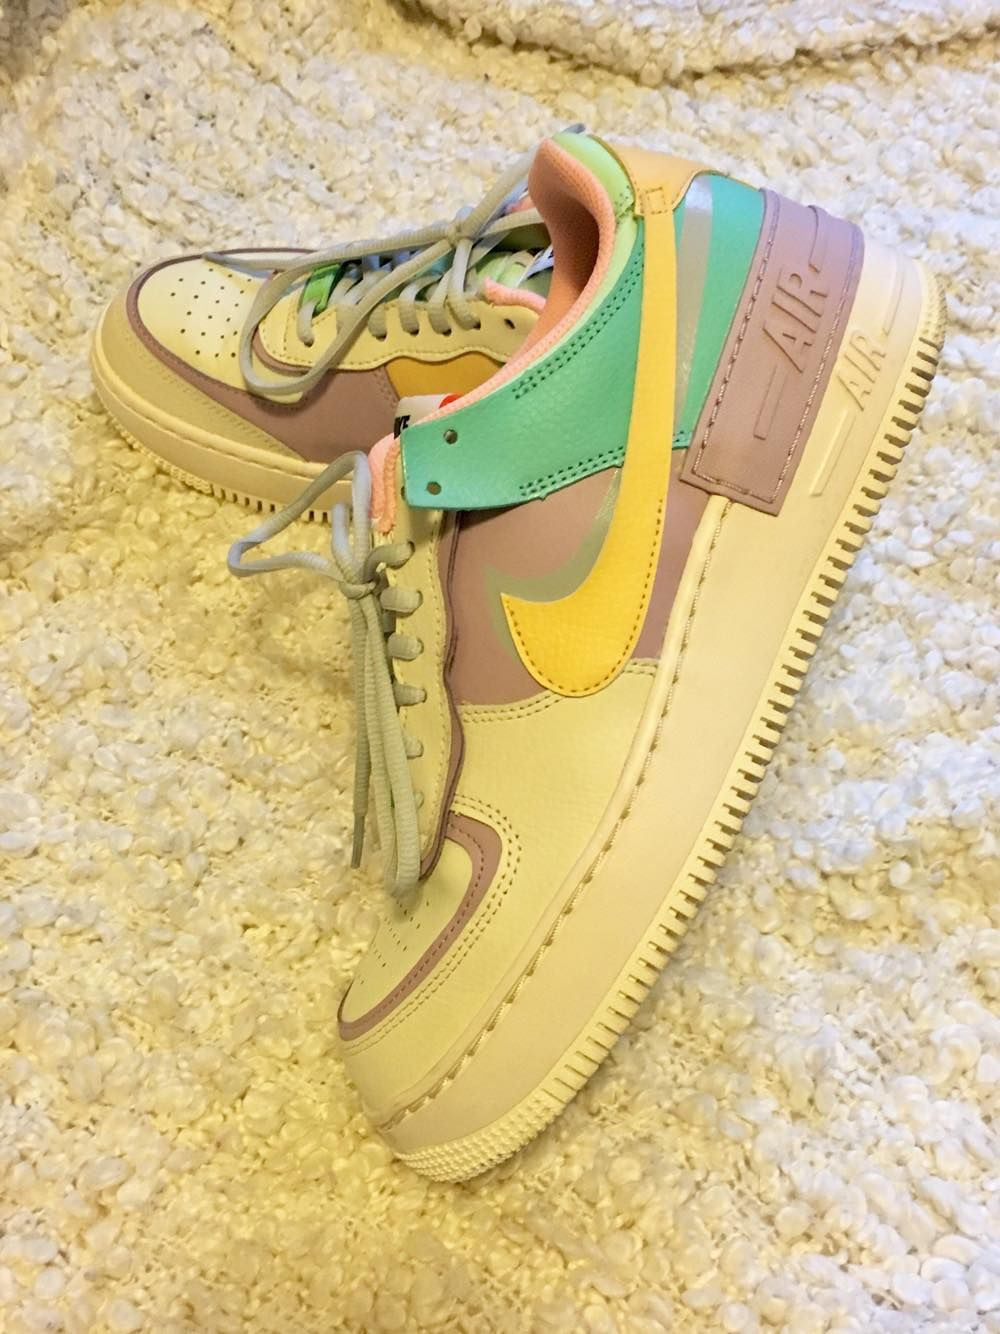 My air force 1 nike pastel. Not easy to